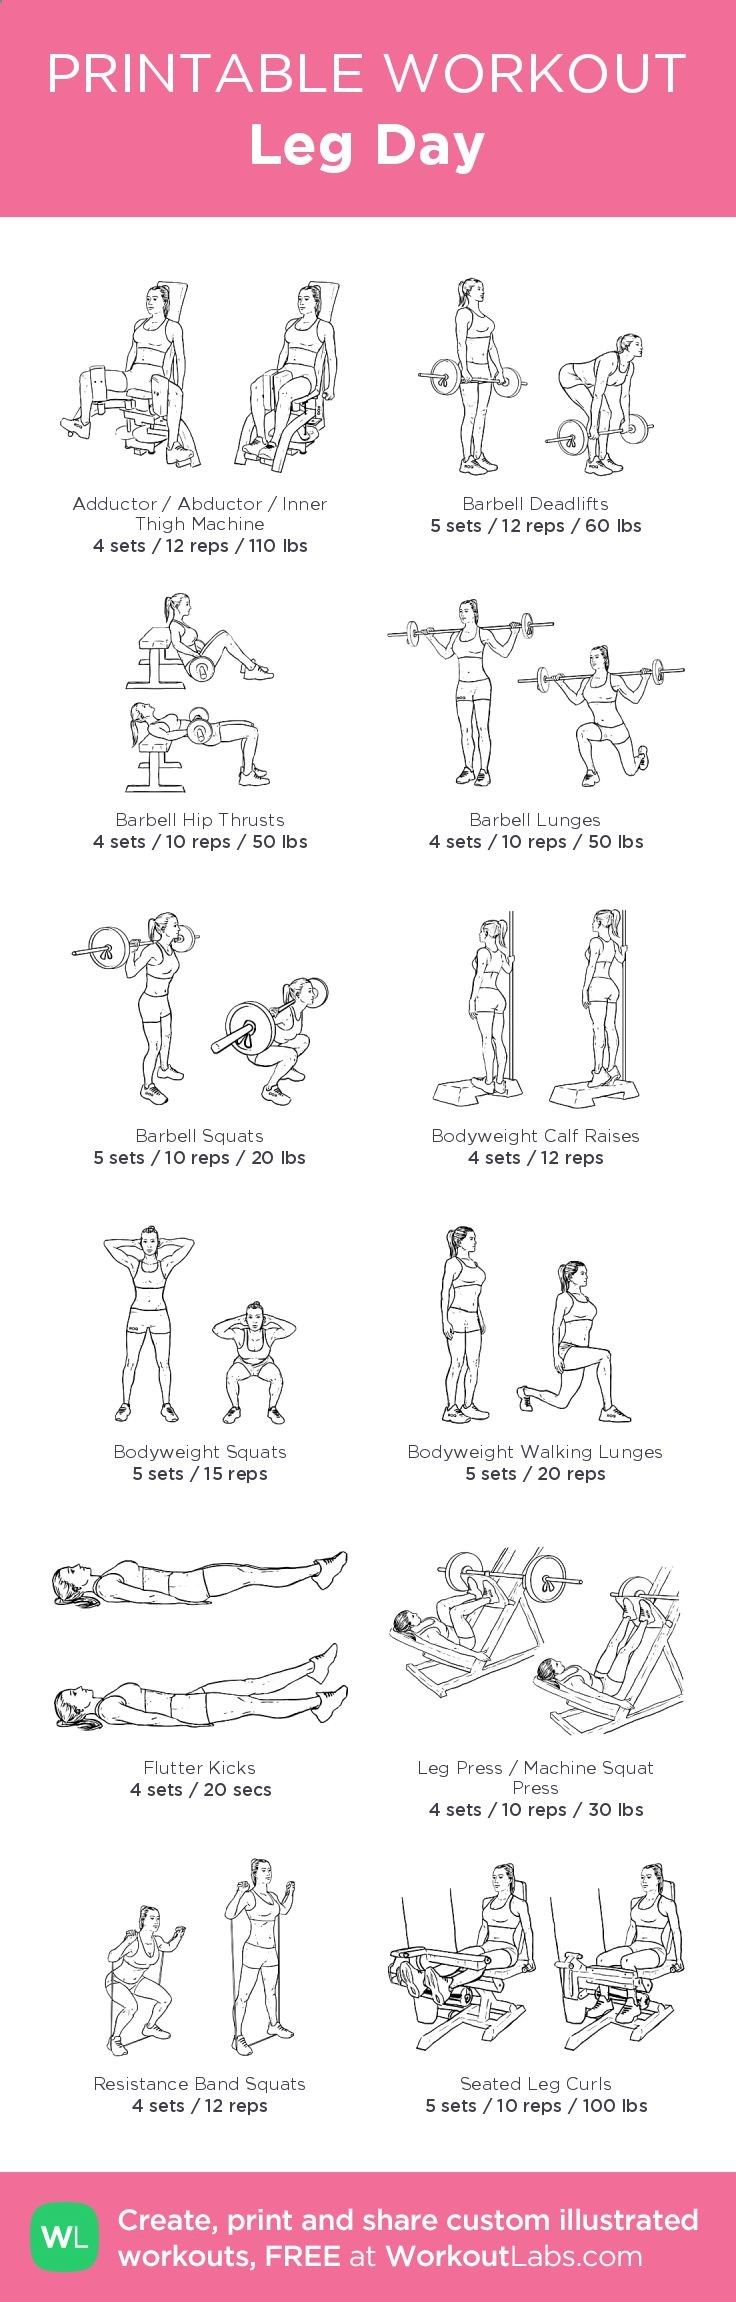 Whether it's six-pack abs, gain muscle or weight loss, these workout plan is great for beginners men and women. with FREE WEEKENDS and No-Gym or equipment needed! http://www.weightlossjumpsstars.com/motivation-for-weight-loss/